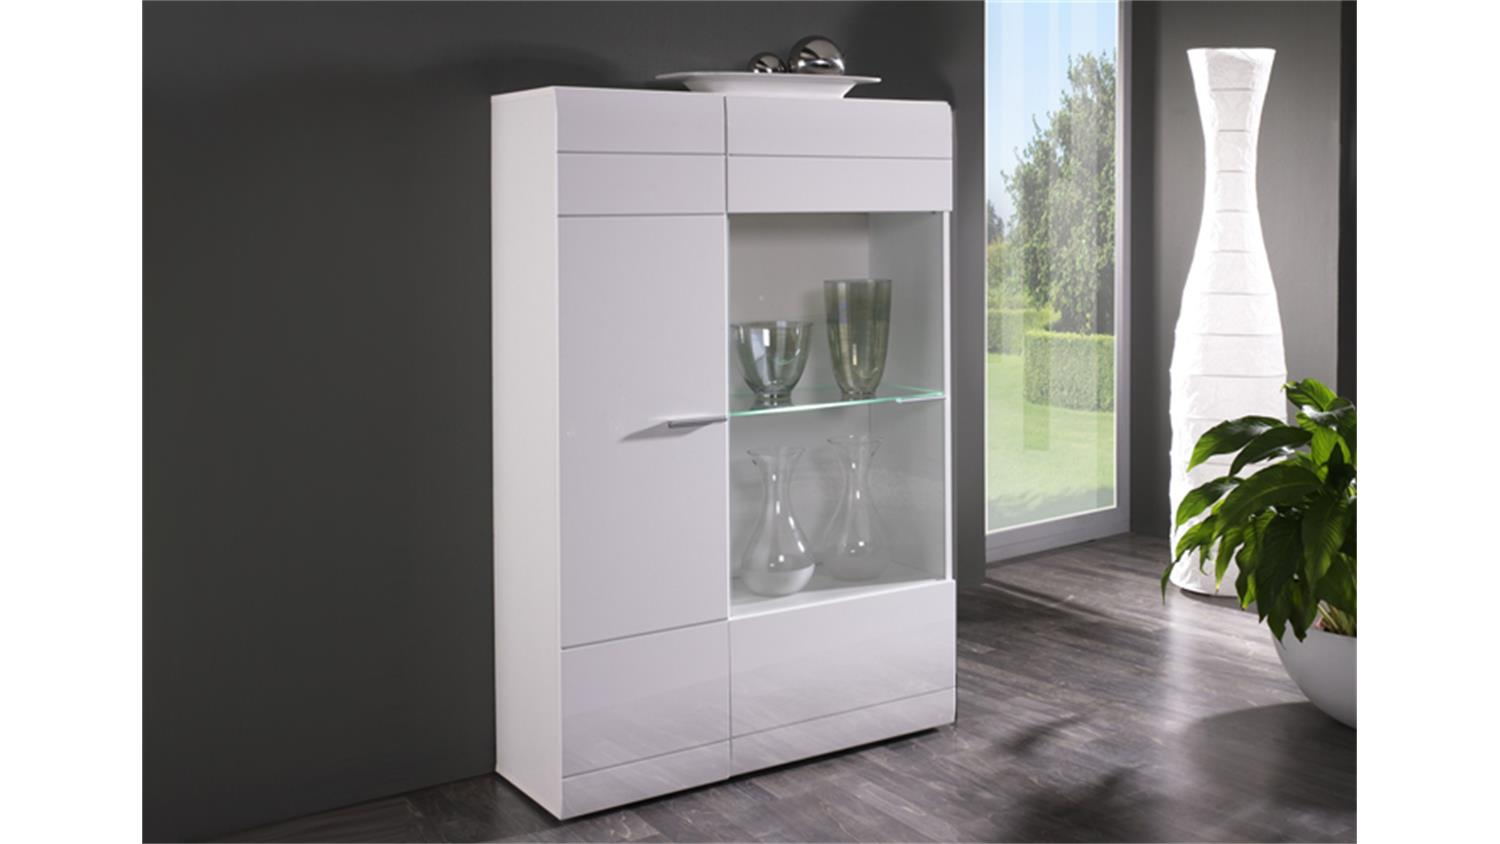 vitrine l carero kleine wohnzimmer vitrine wei hochglanz. Black Bedroom Furniture Sets. Home Design Ideas